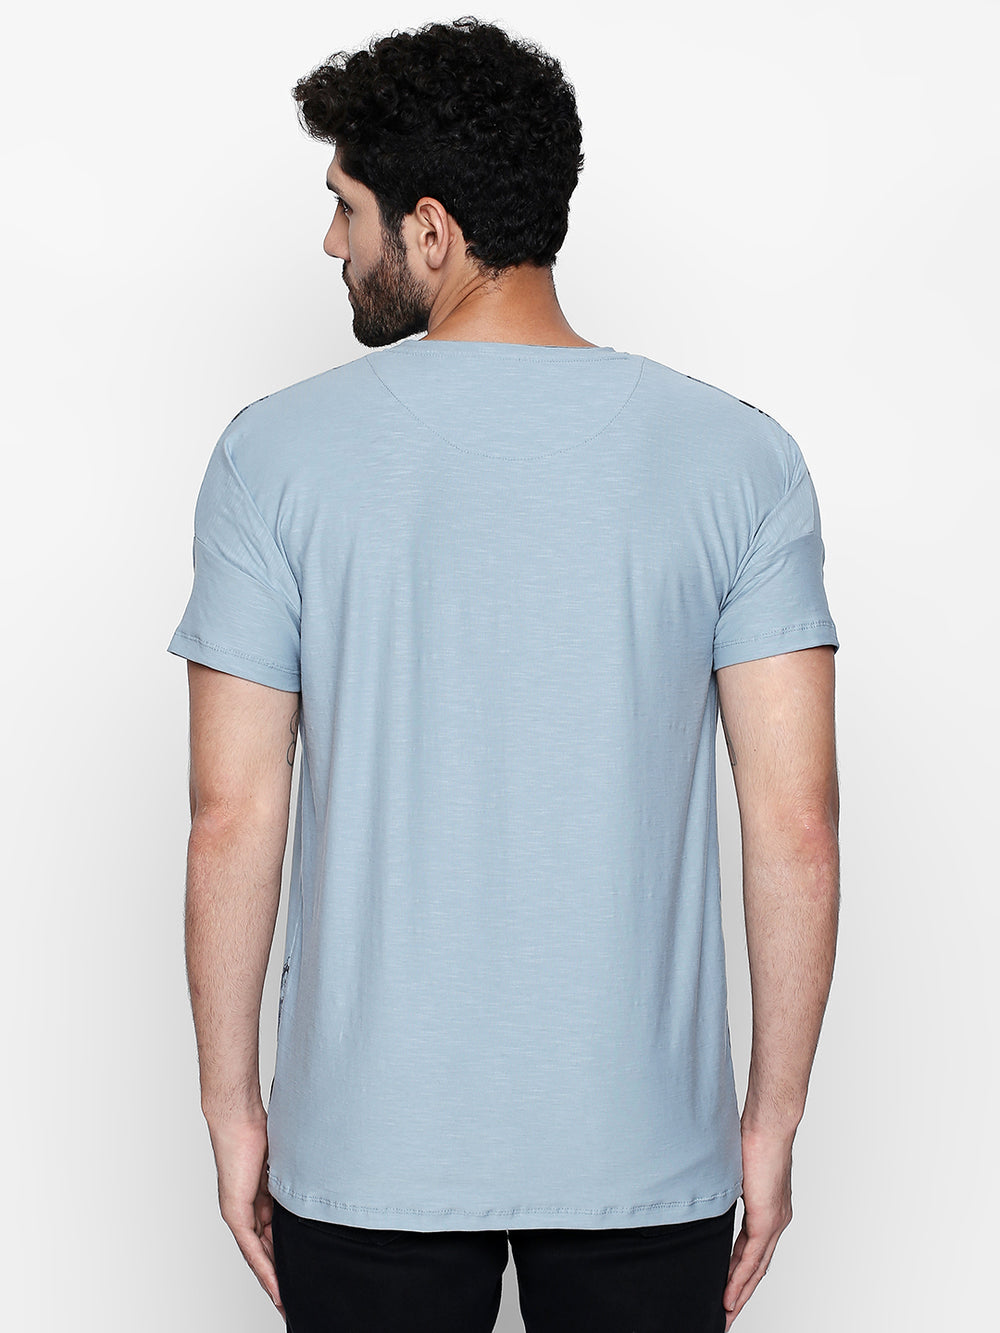 Sky Blue Graphic Print Cotton T-Shirt